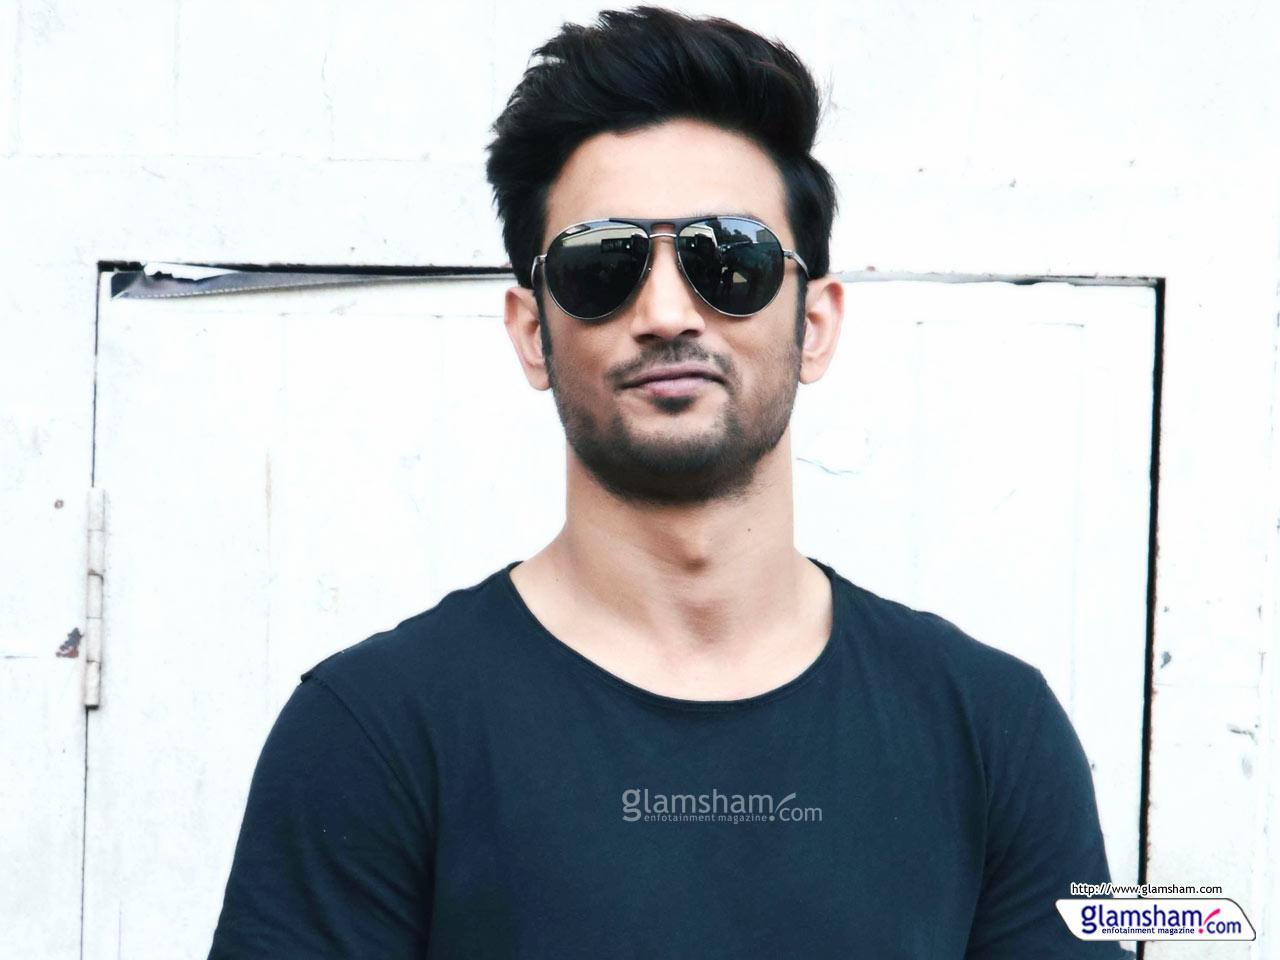 Sushant%2BSingh%2BRajput6 Sushant Singh Rajput Bio, wiki, Family, Relationship, Net Worth, Car Collection, Best Photos, Death News, Movies and more 2021